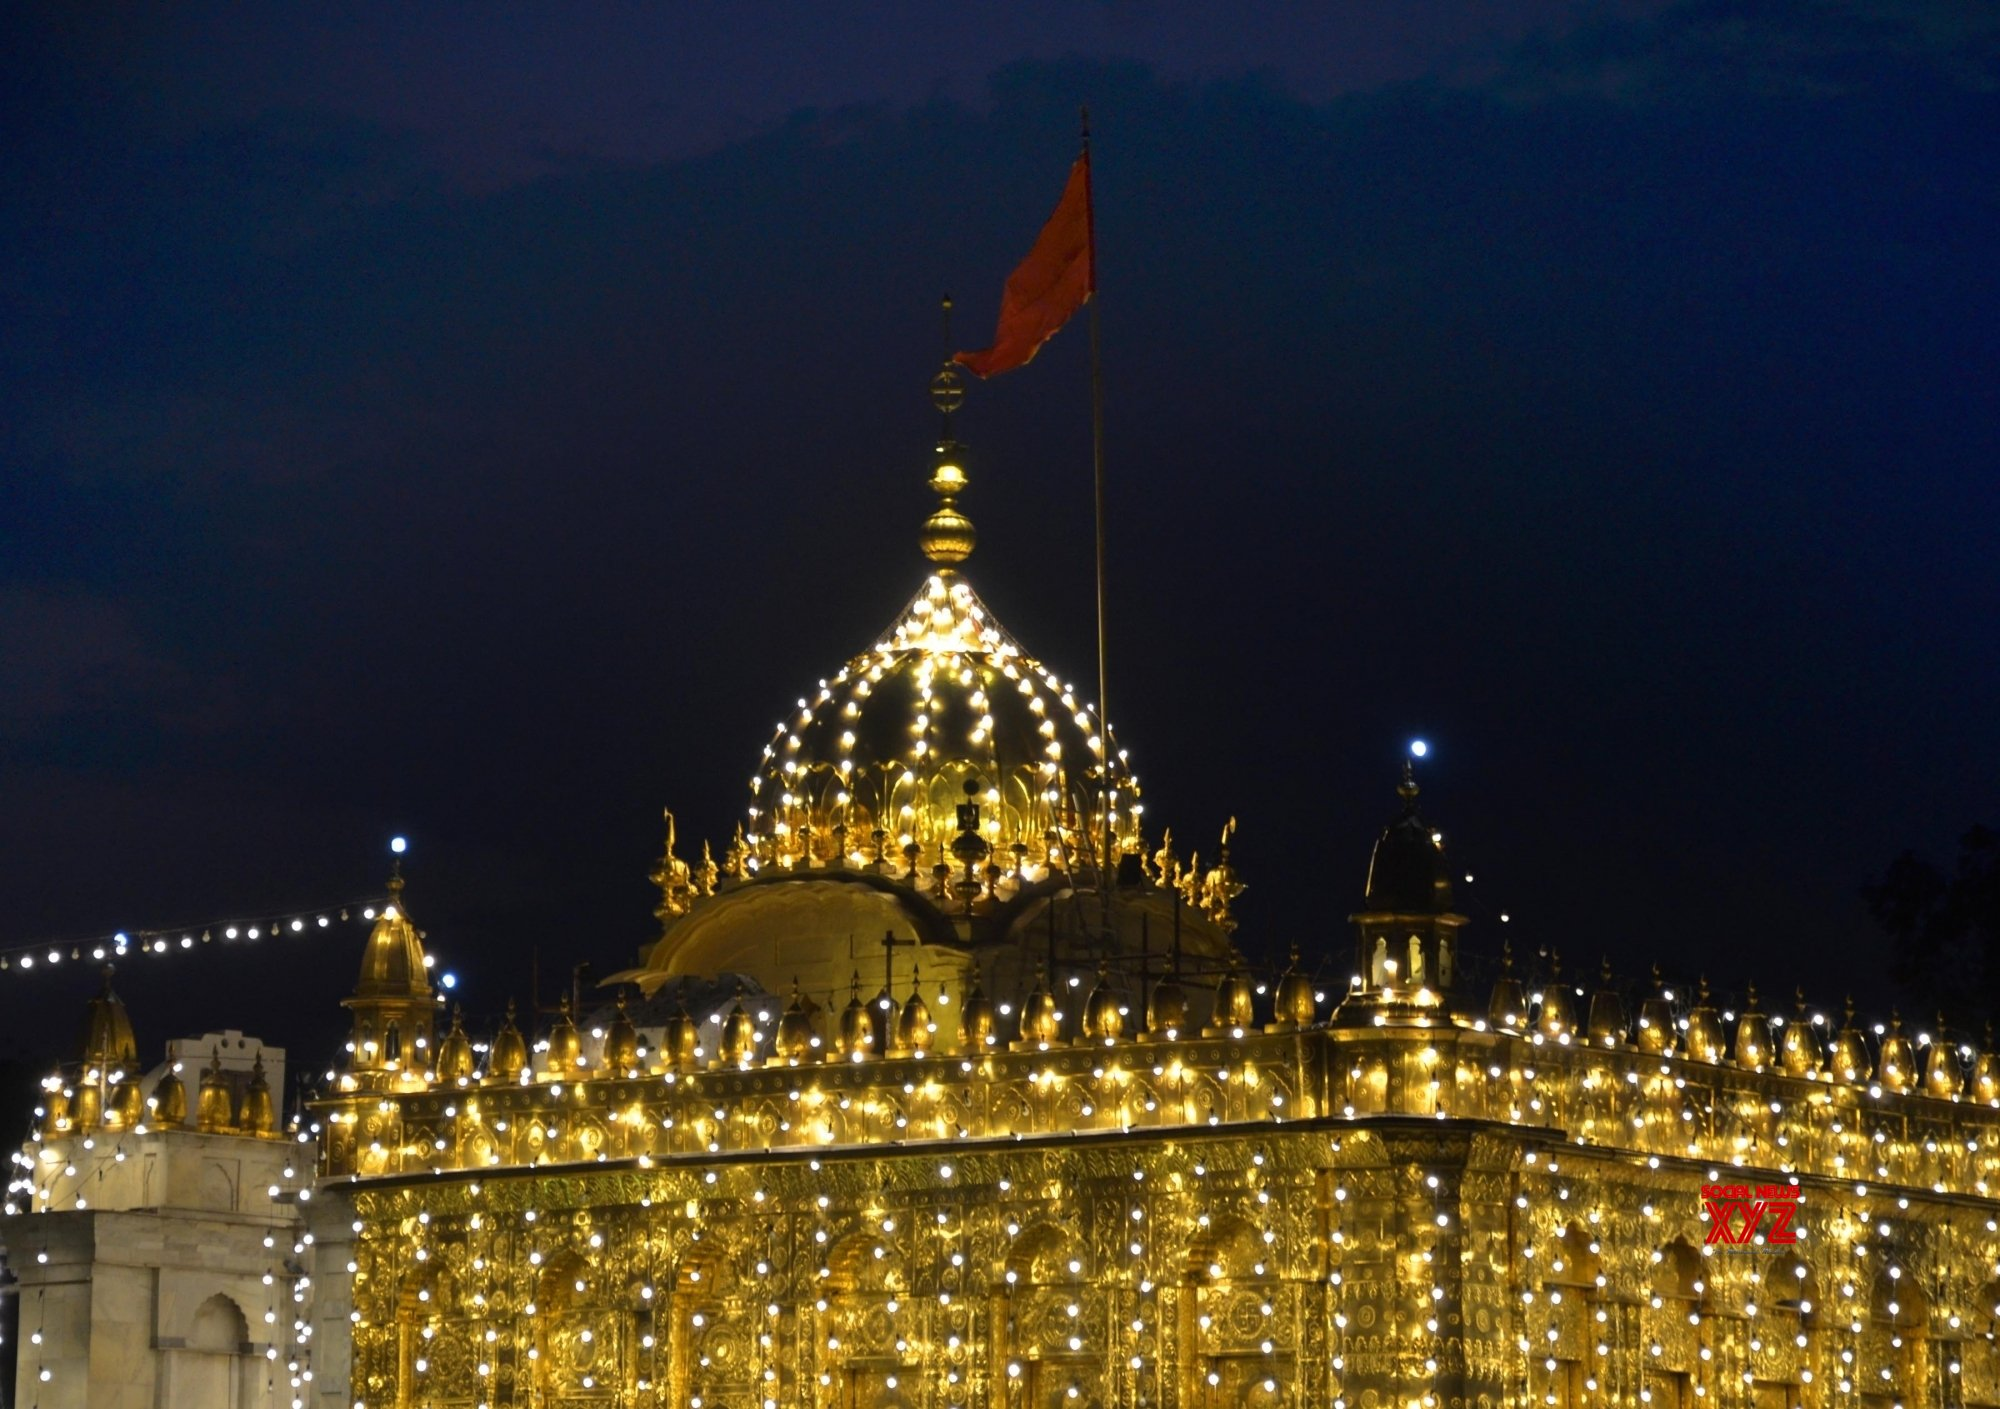 Amritsar: Celebrations break out as PM Modi performs Ram Mandir 'Bhumi Pujan' in Ayodhya #Gallery